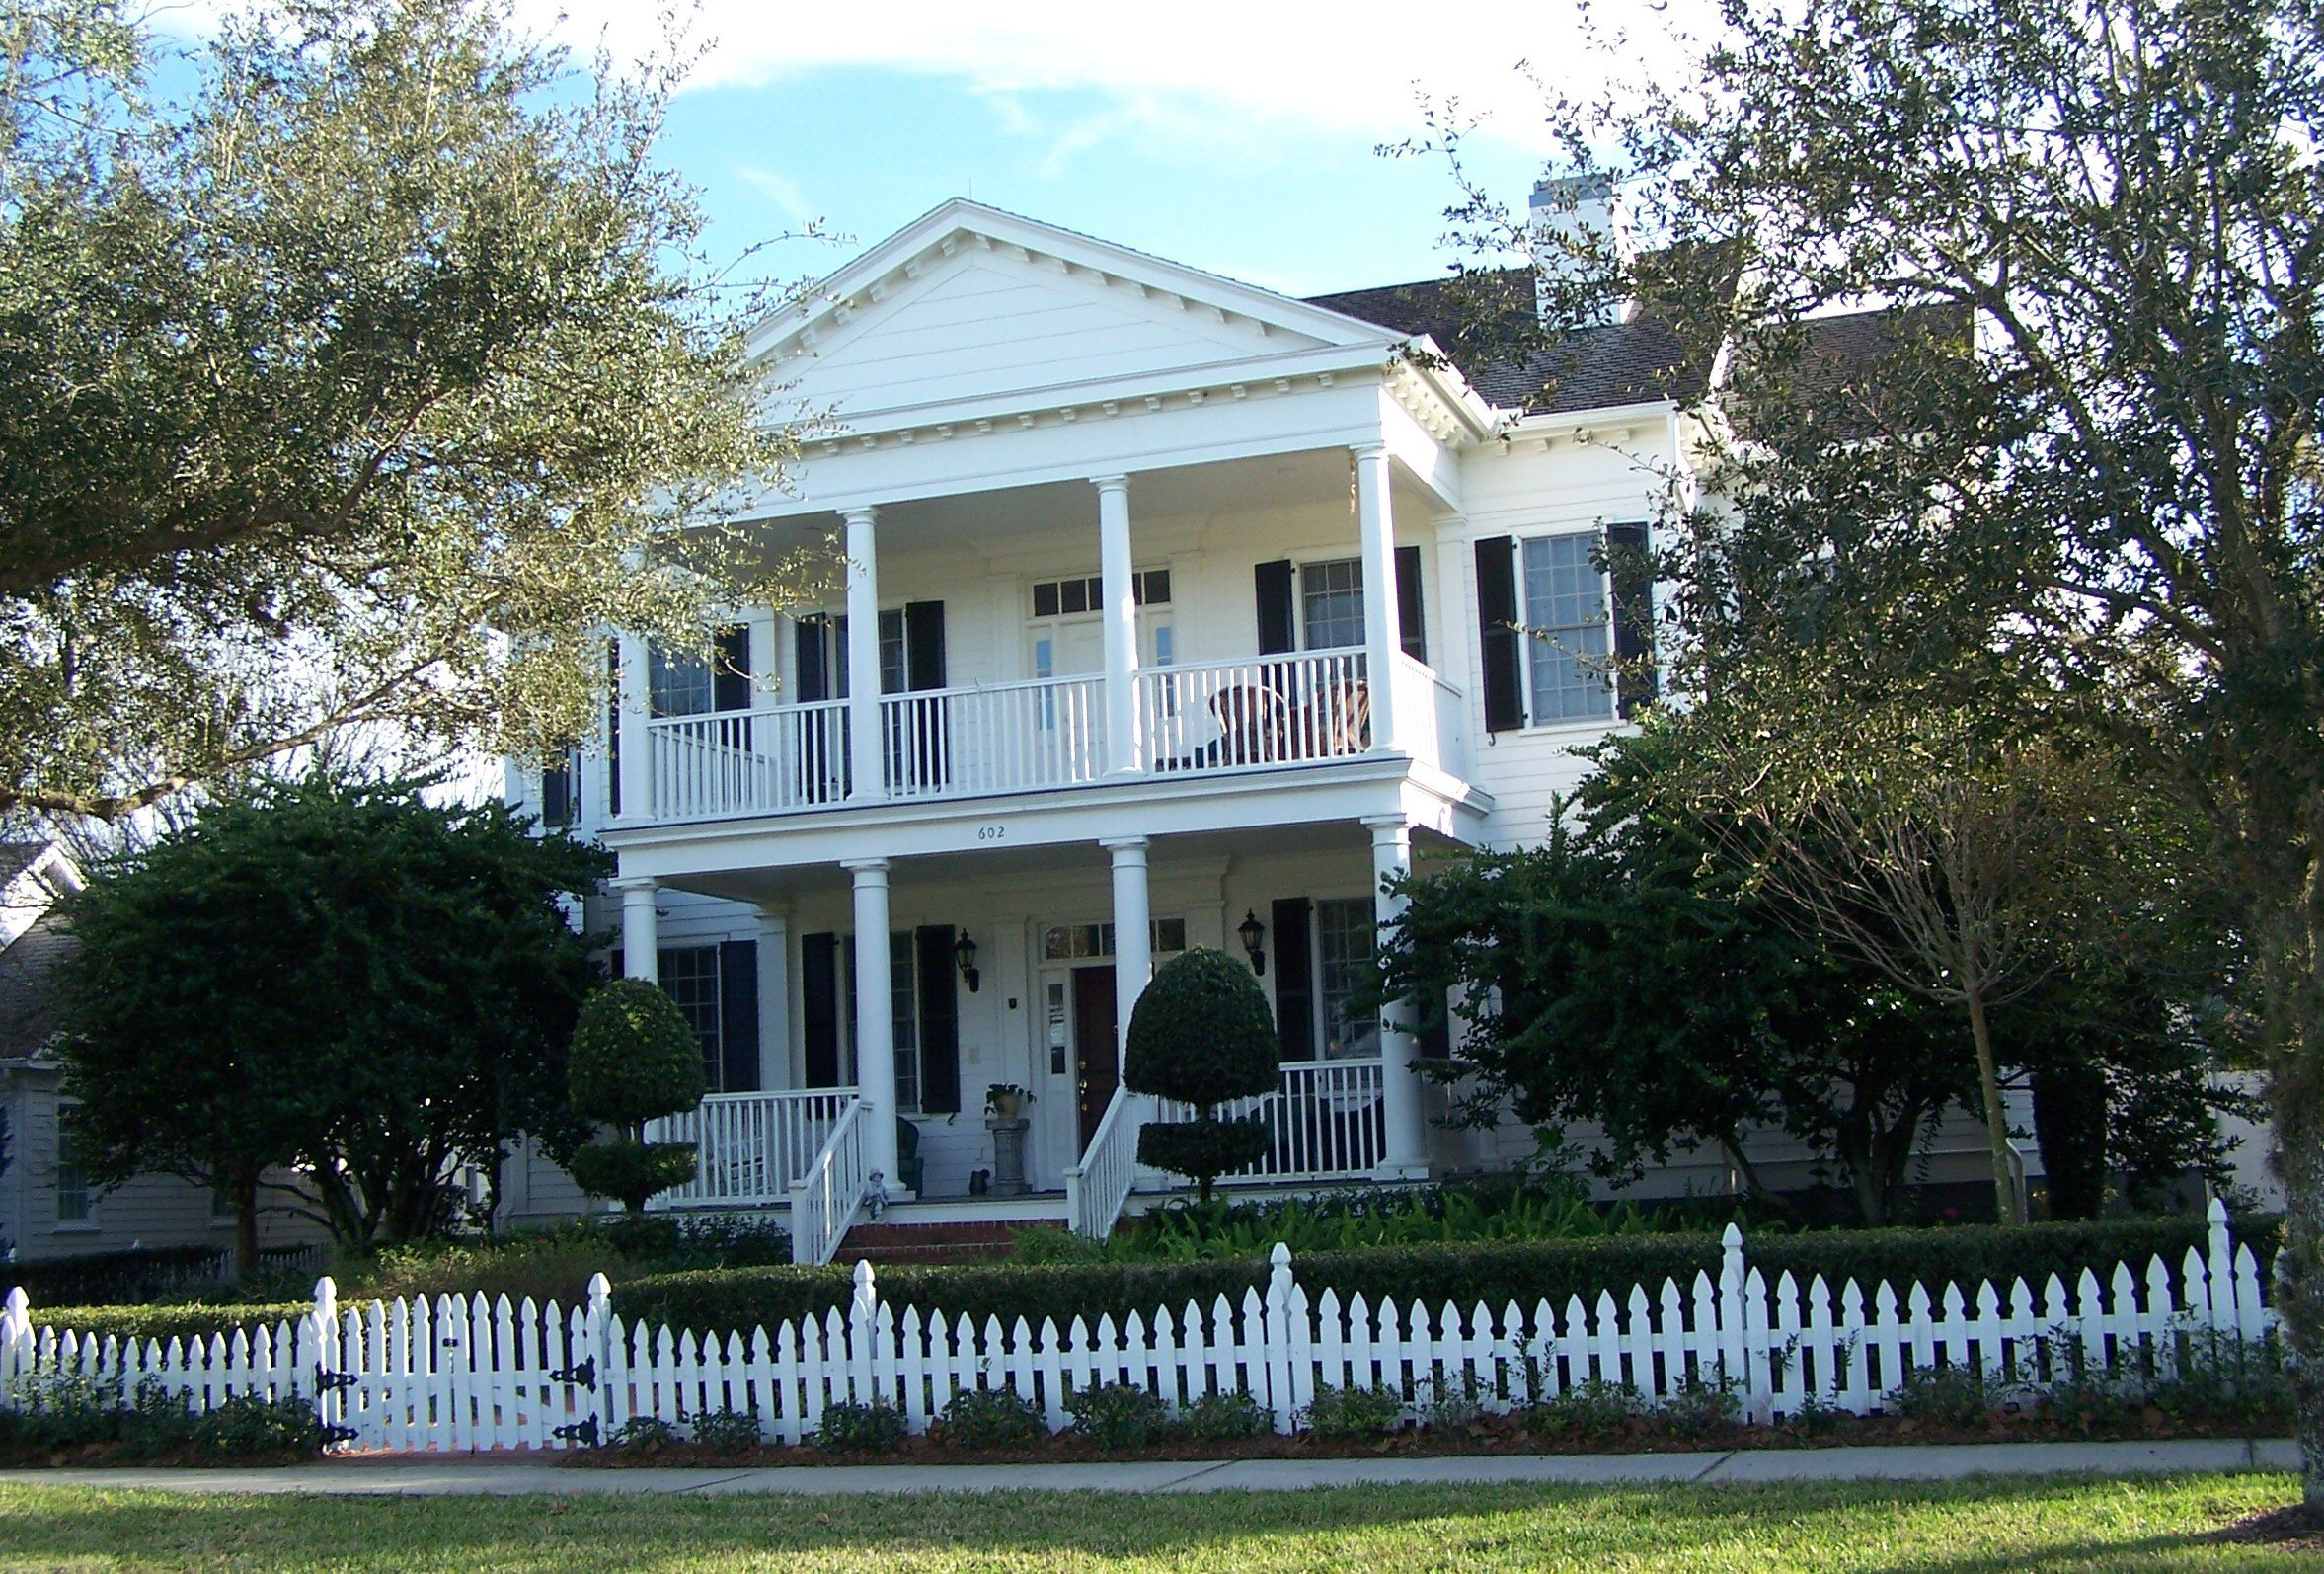 Overly small picket fence in front of a massive two-story classical estate